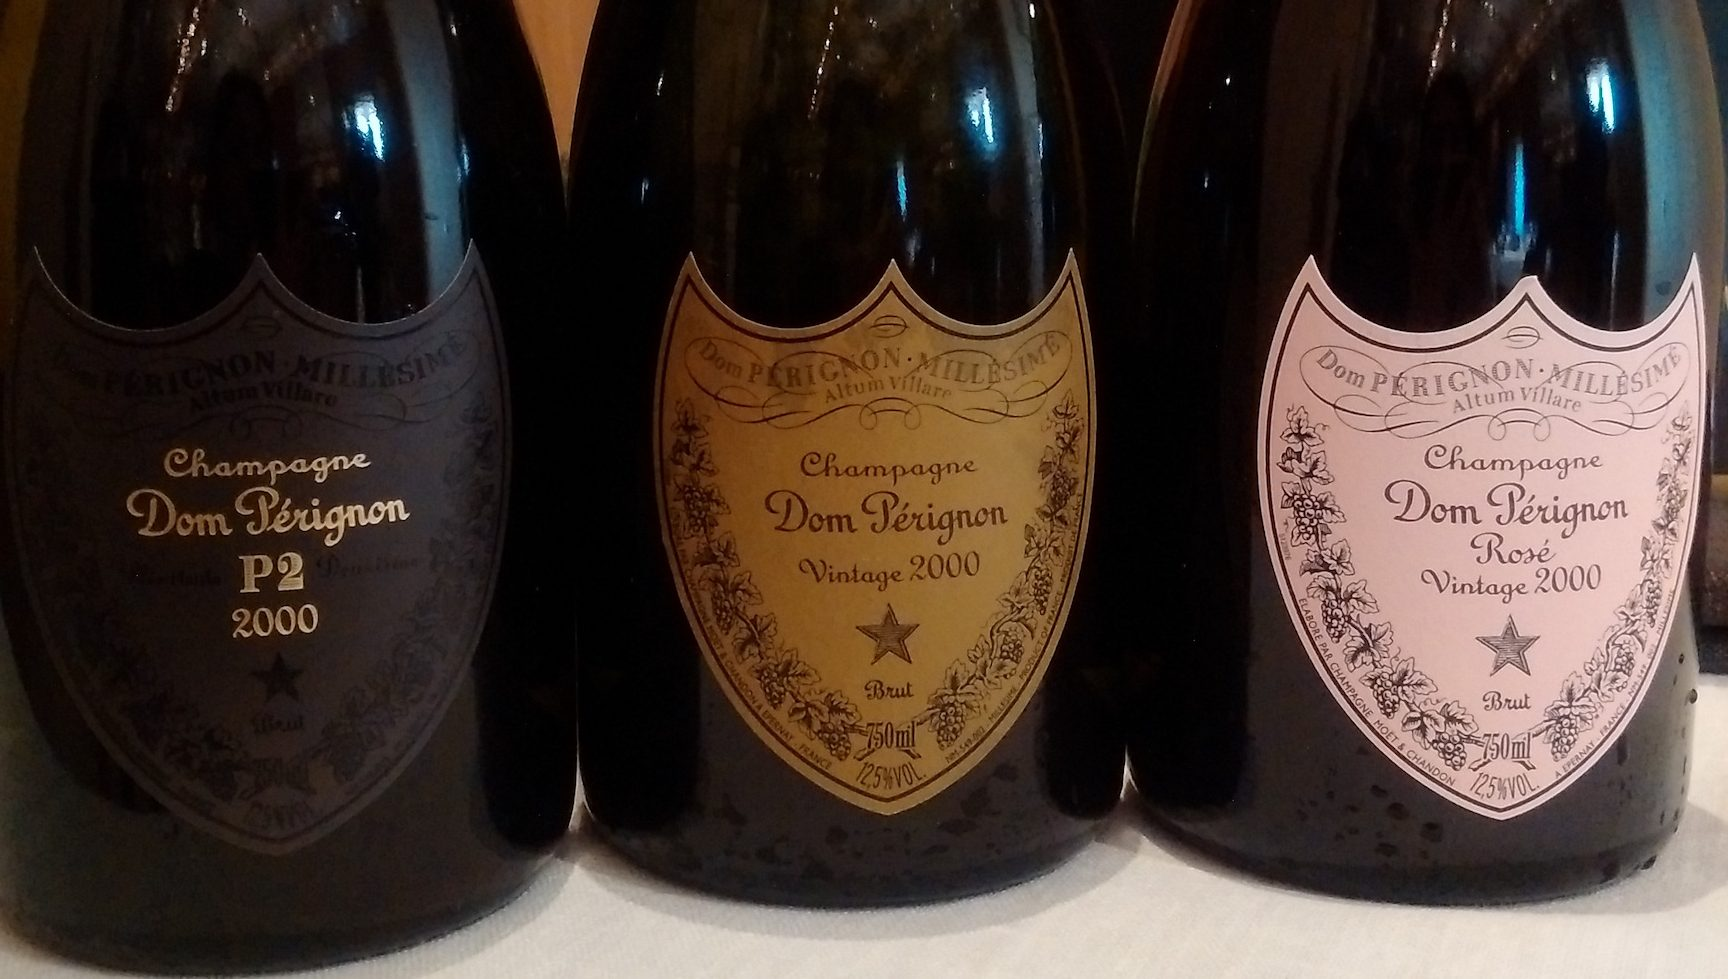 The Vision Behind Dom Perignon P2 2000 And Why It Is About The